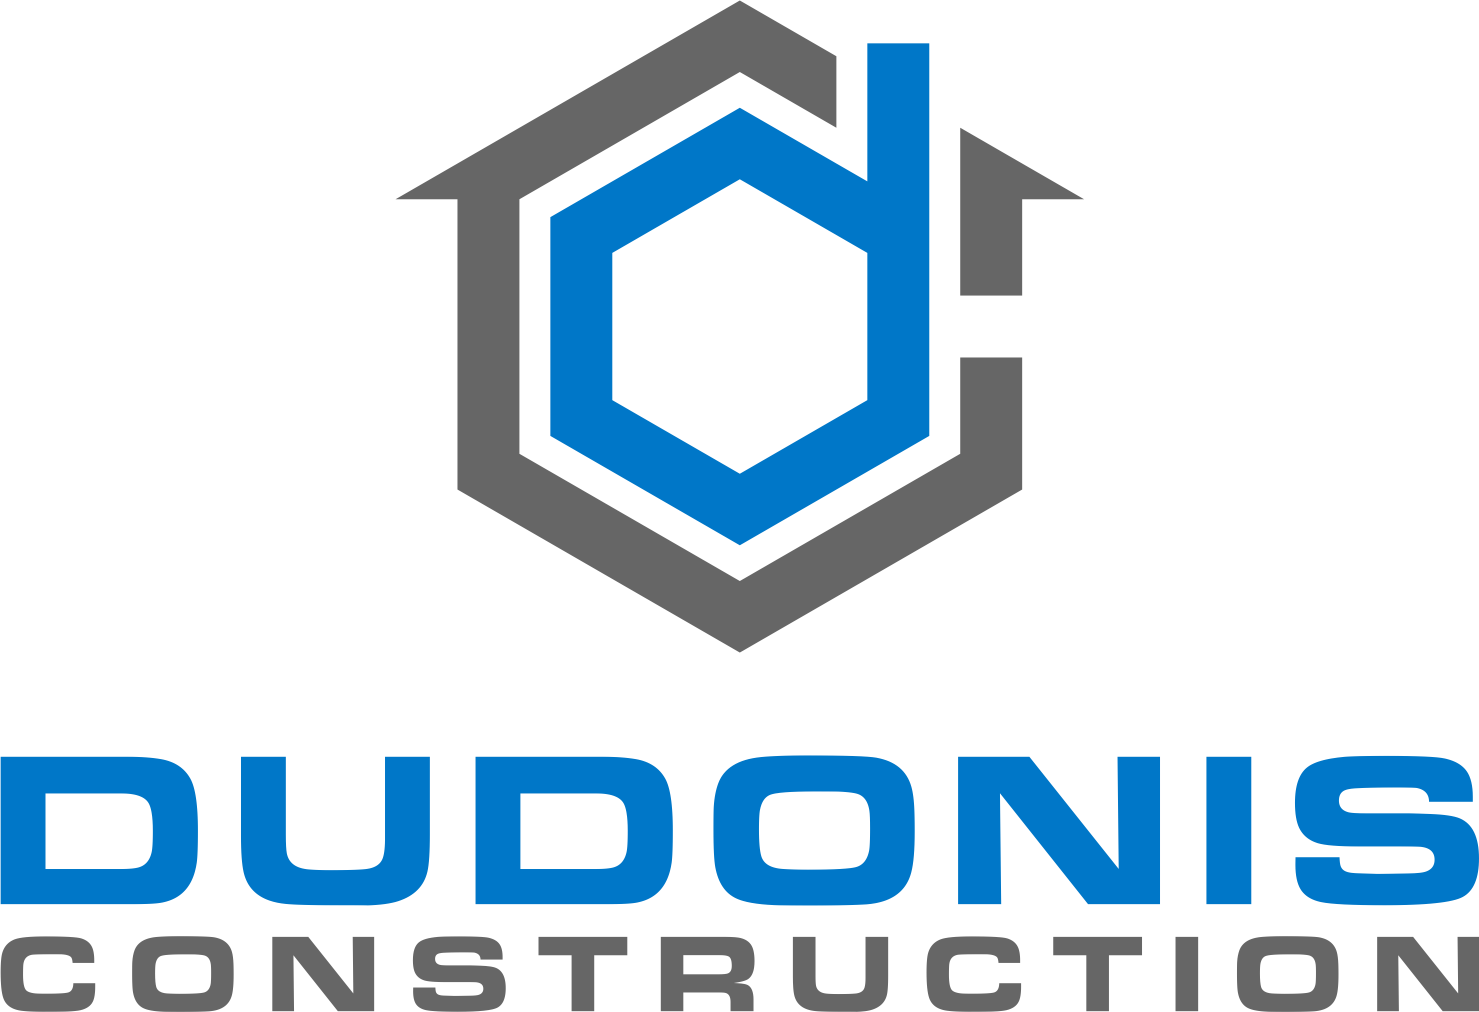 Dudonis Construction